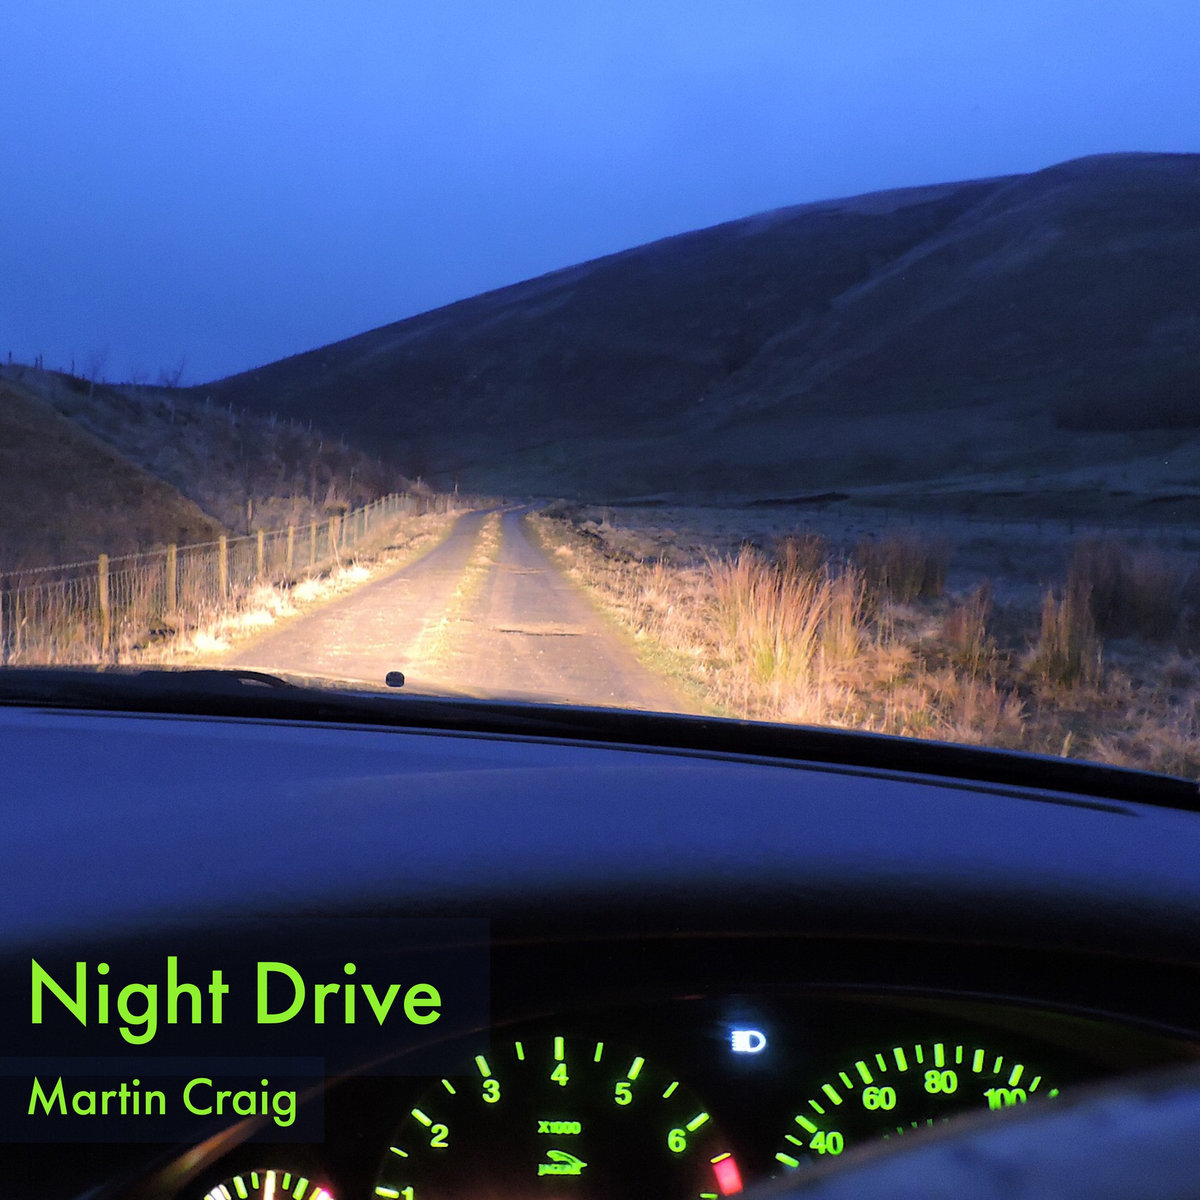 Night Drive (acoustic) by Martin Craig